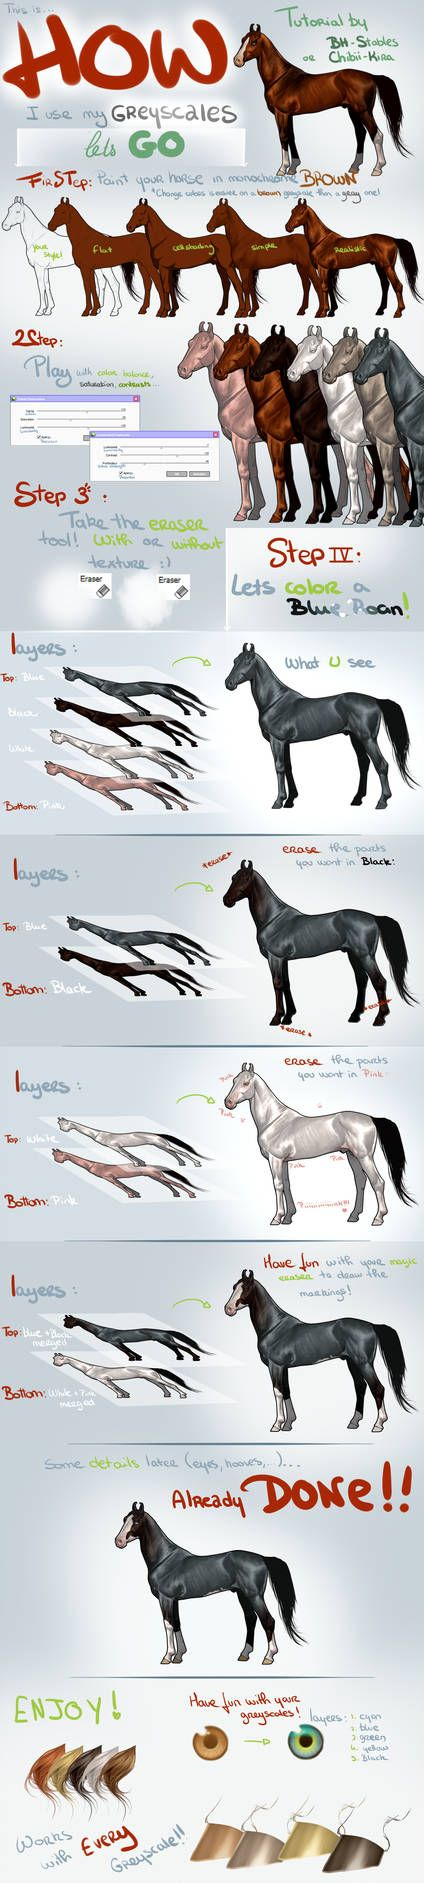 Greyscale Tutorial By Bh Stables Greyscale Digital Painting Tutorials Sport Horse